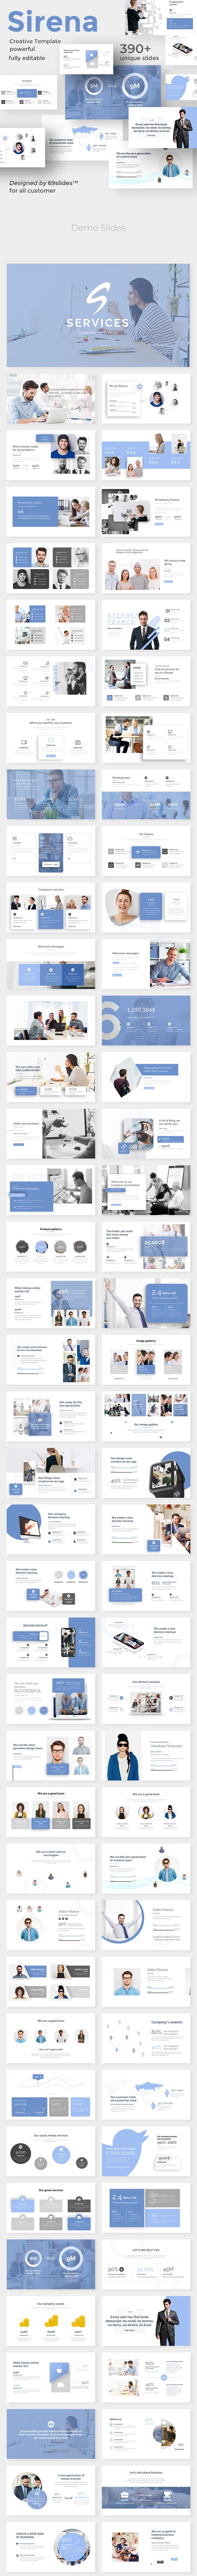 Services Concept Pitch Deck Keynote Template - Business Keynote Templates